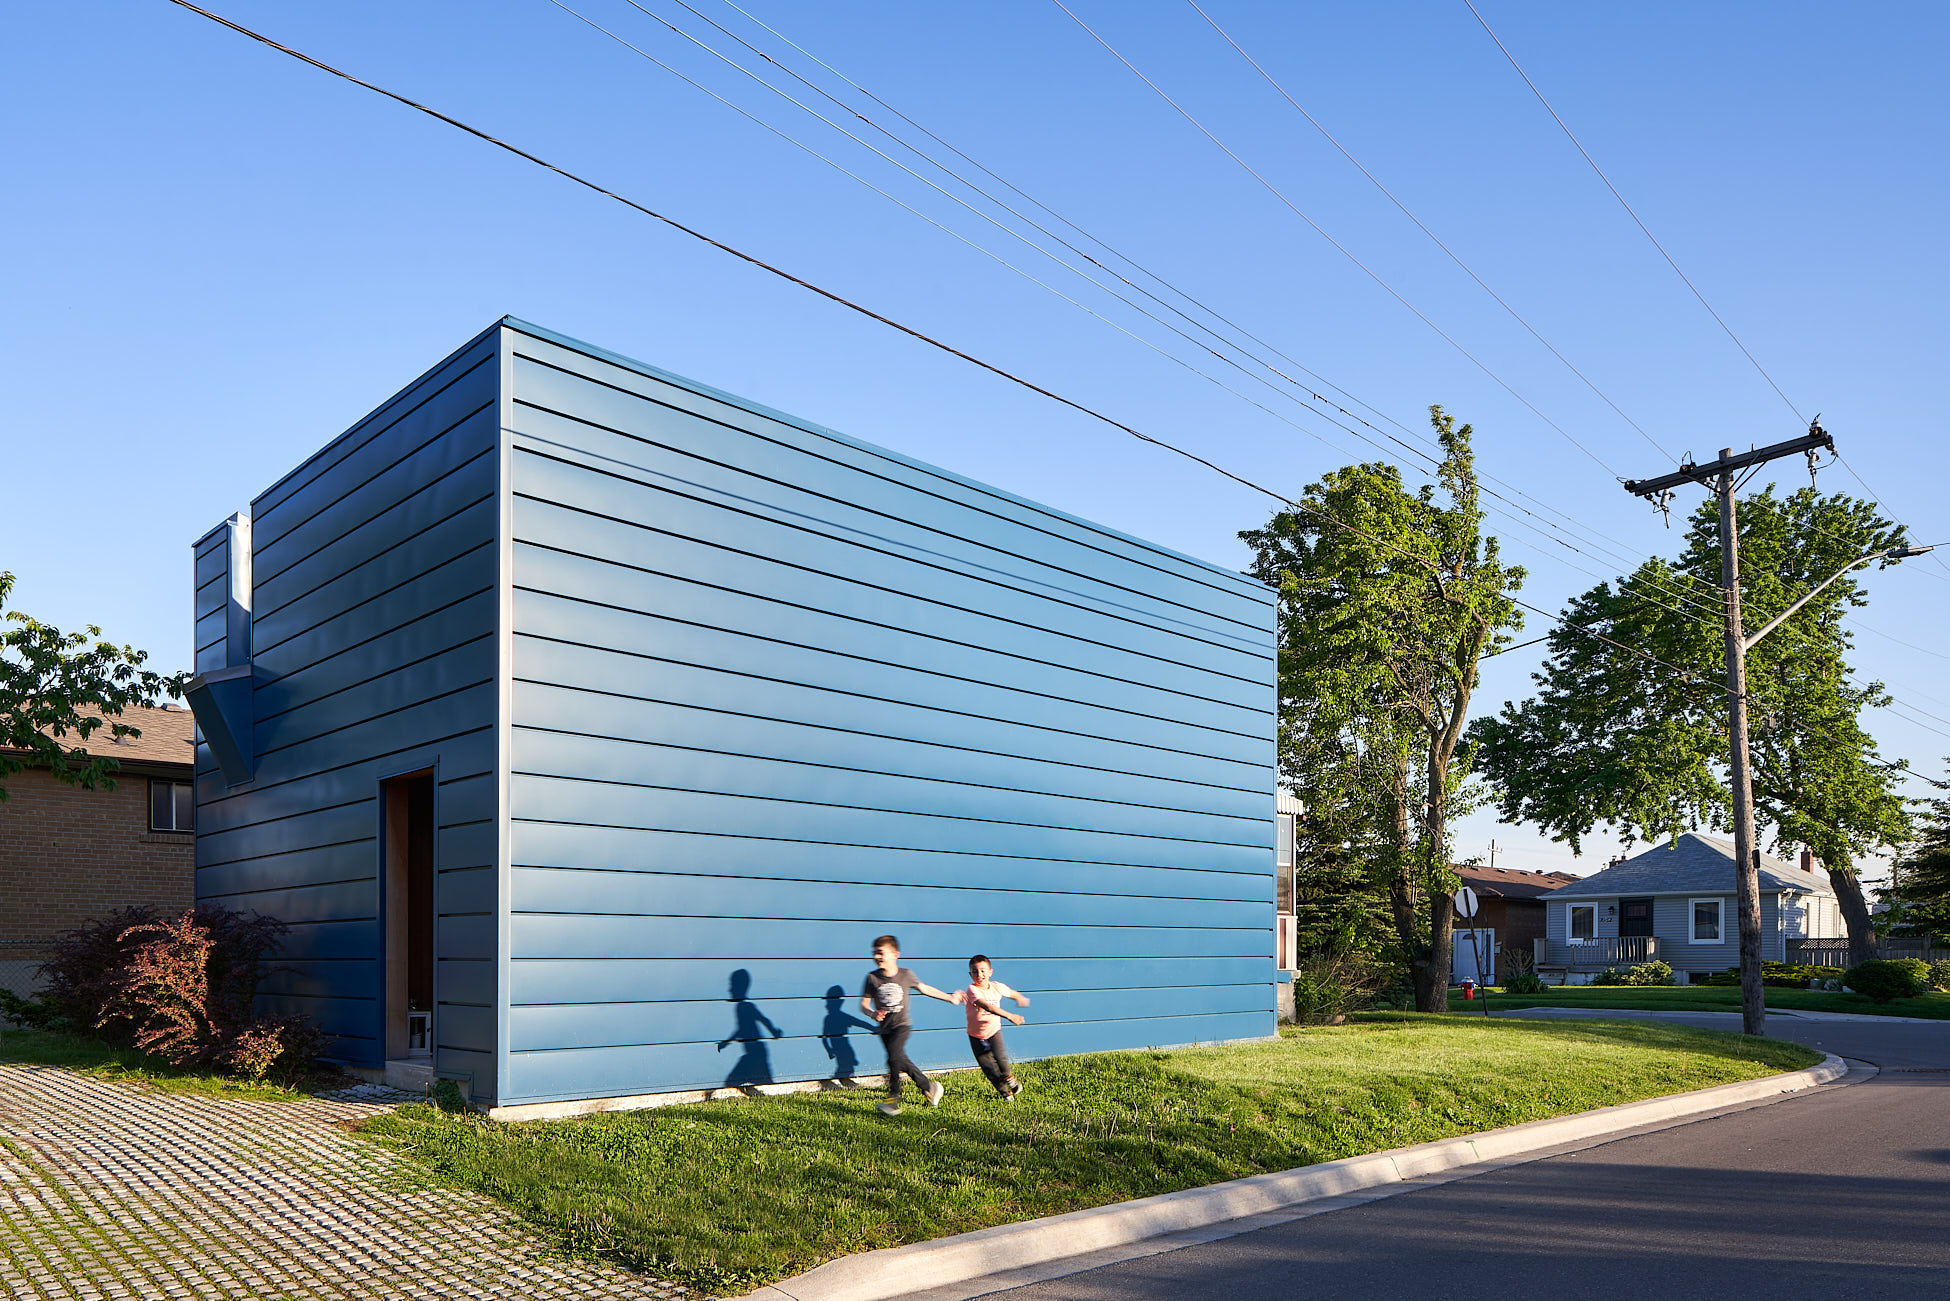 Blue building attached to existing suburbanhome